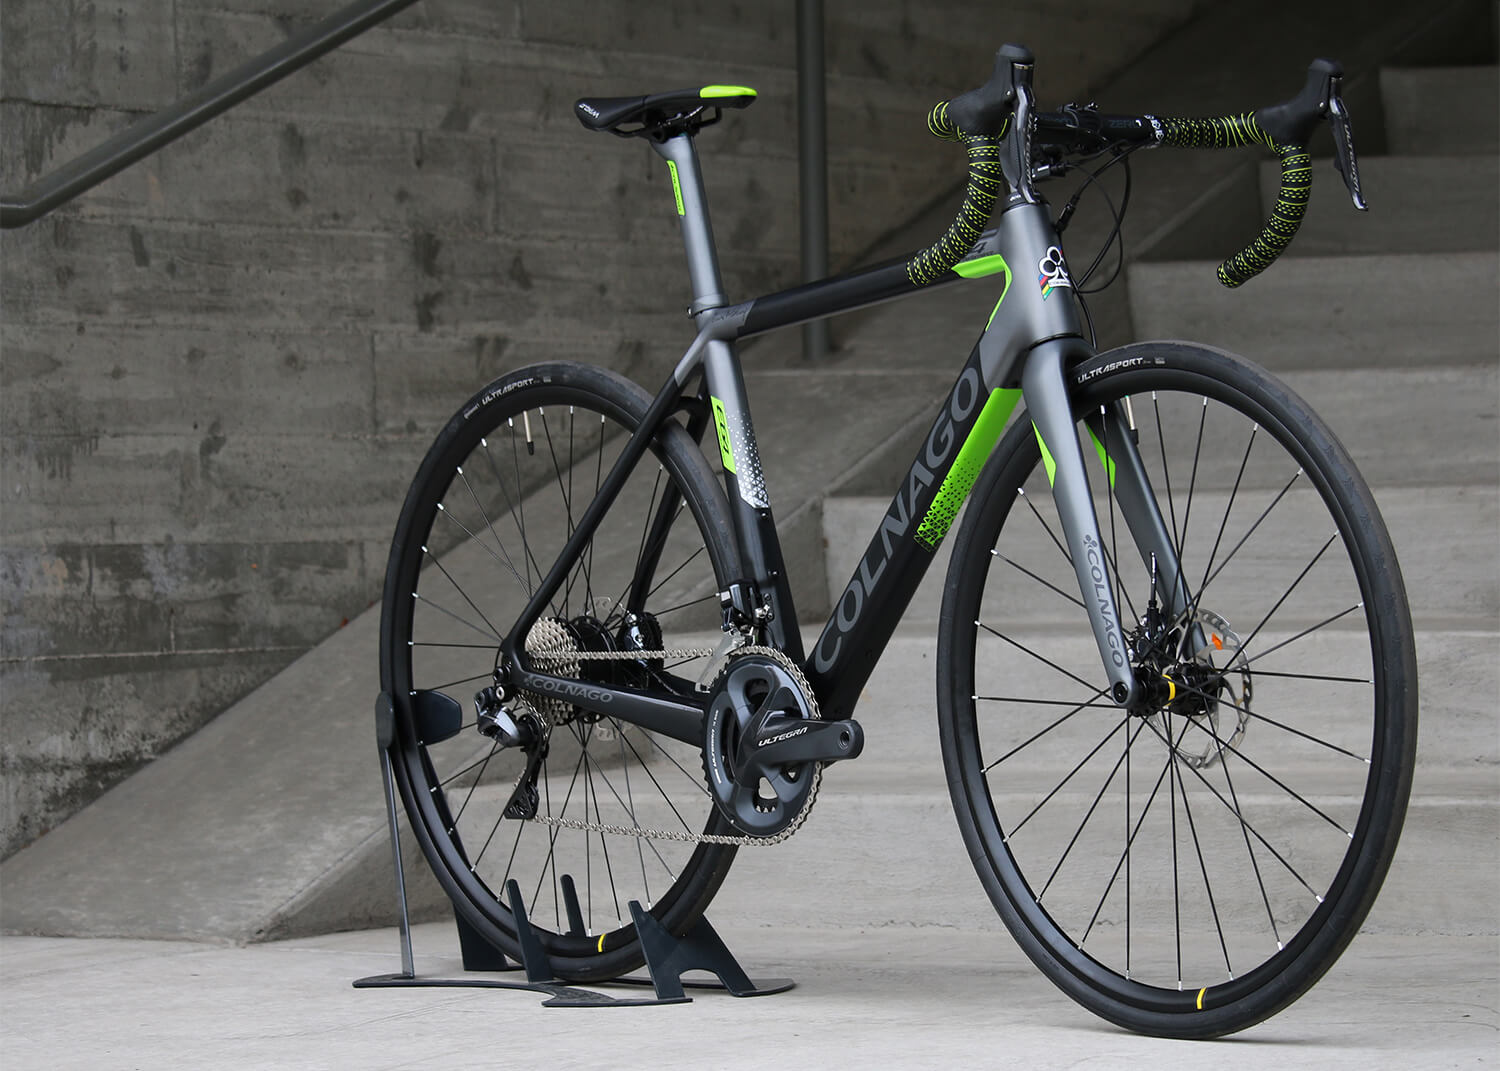 Colnago E64 - Contender Bicycles